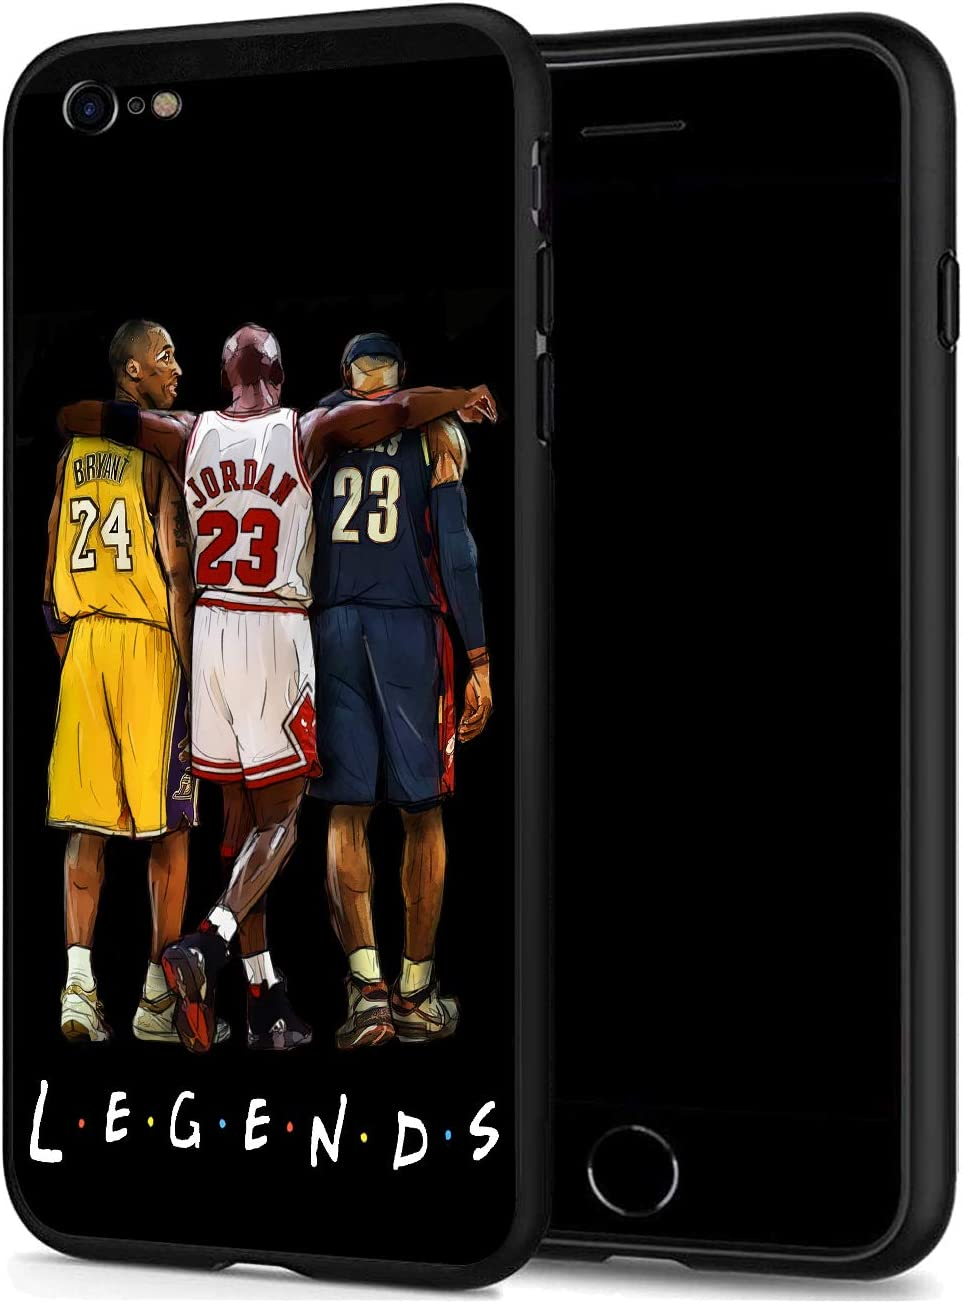 GONA iPhone SE 2020 Case/iPhone 8 /iPhone 7 Case for Basketball Fans, Soft Silicone Protective Thin Case Compatible with iPhone SE (Legends-Kobe-Jordan-Lebron)